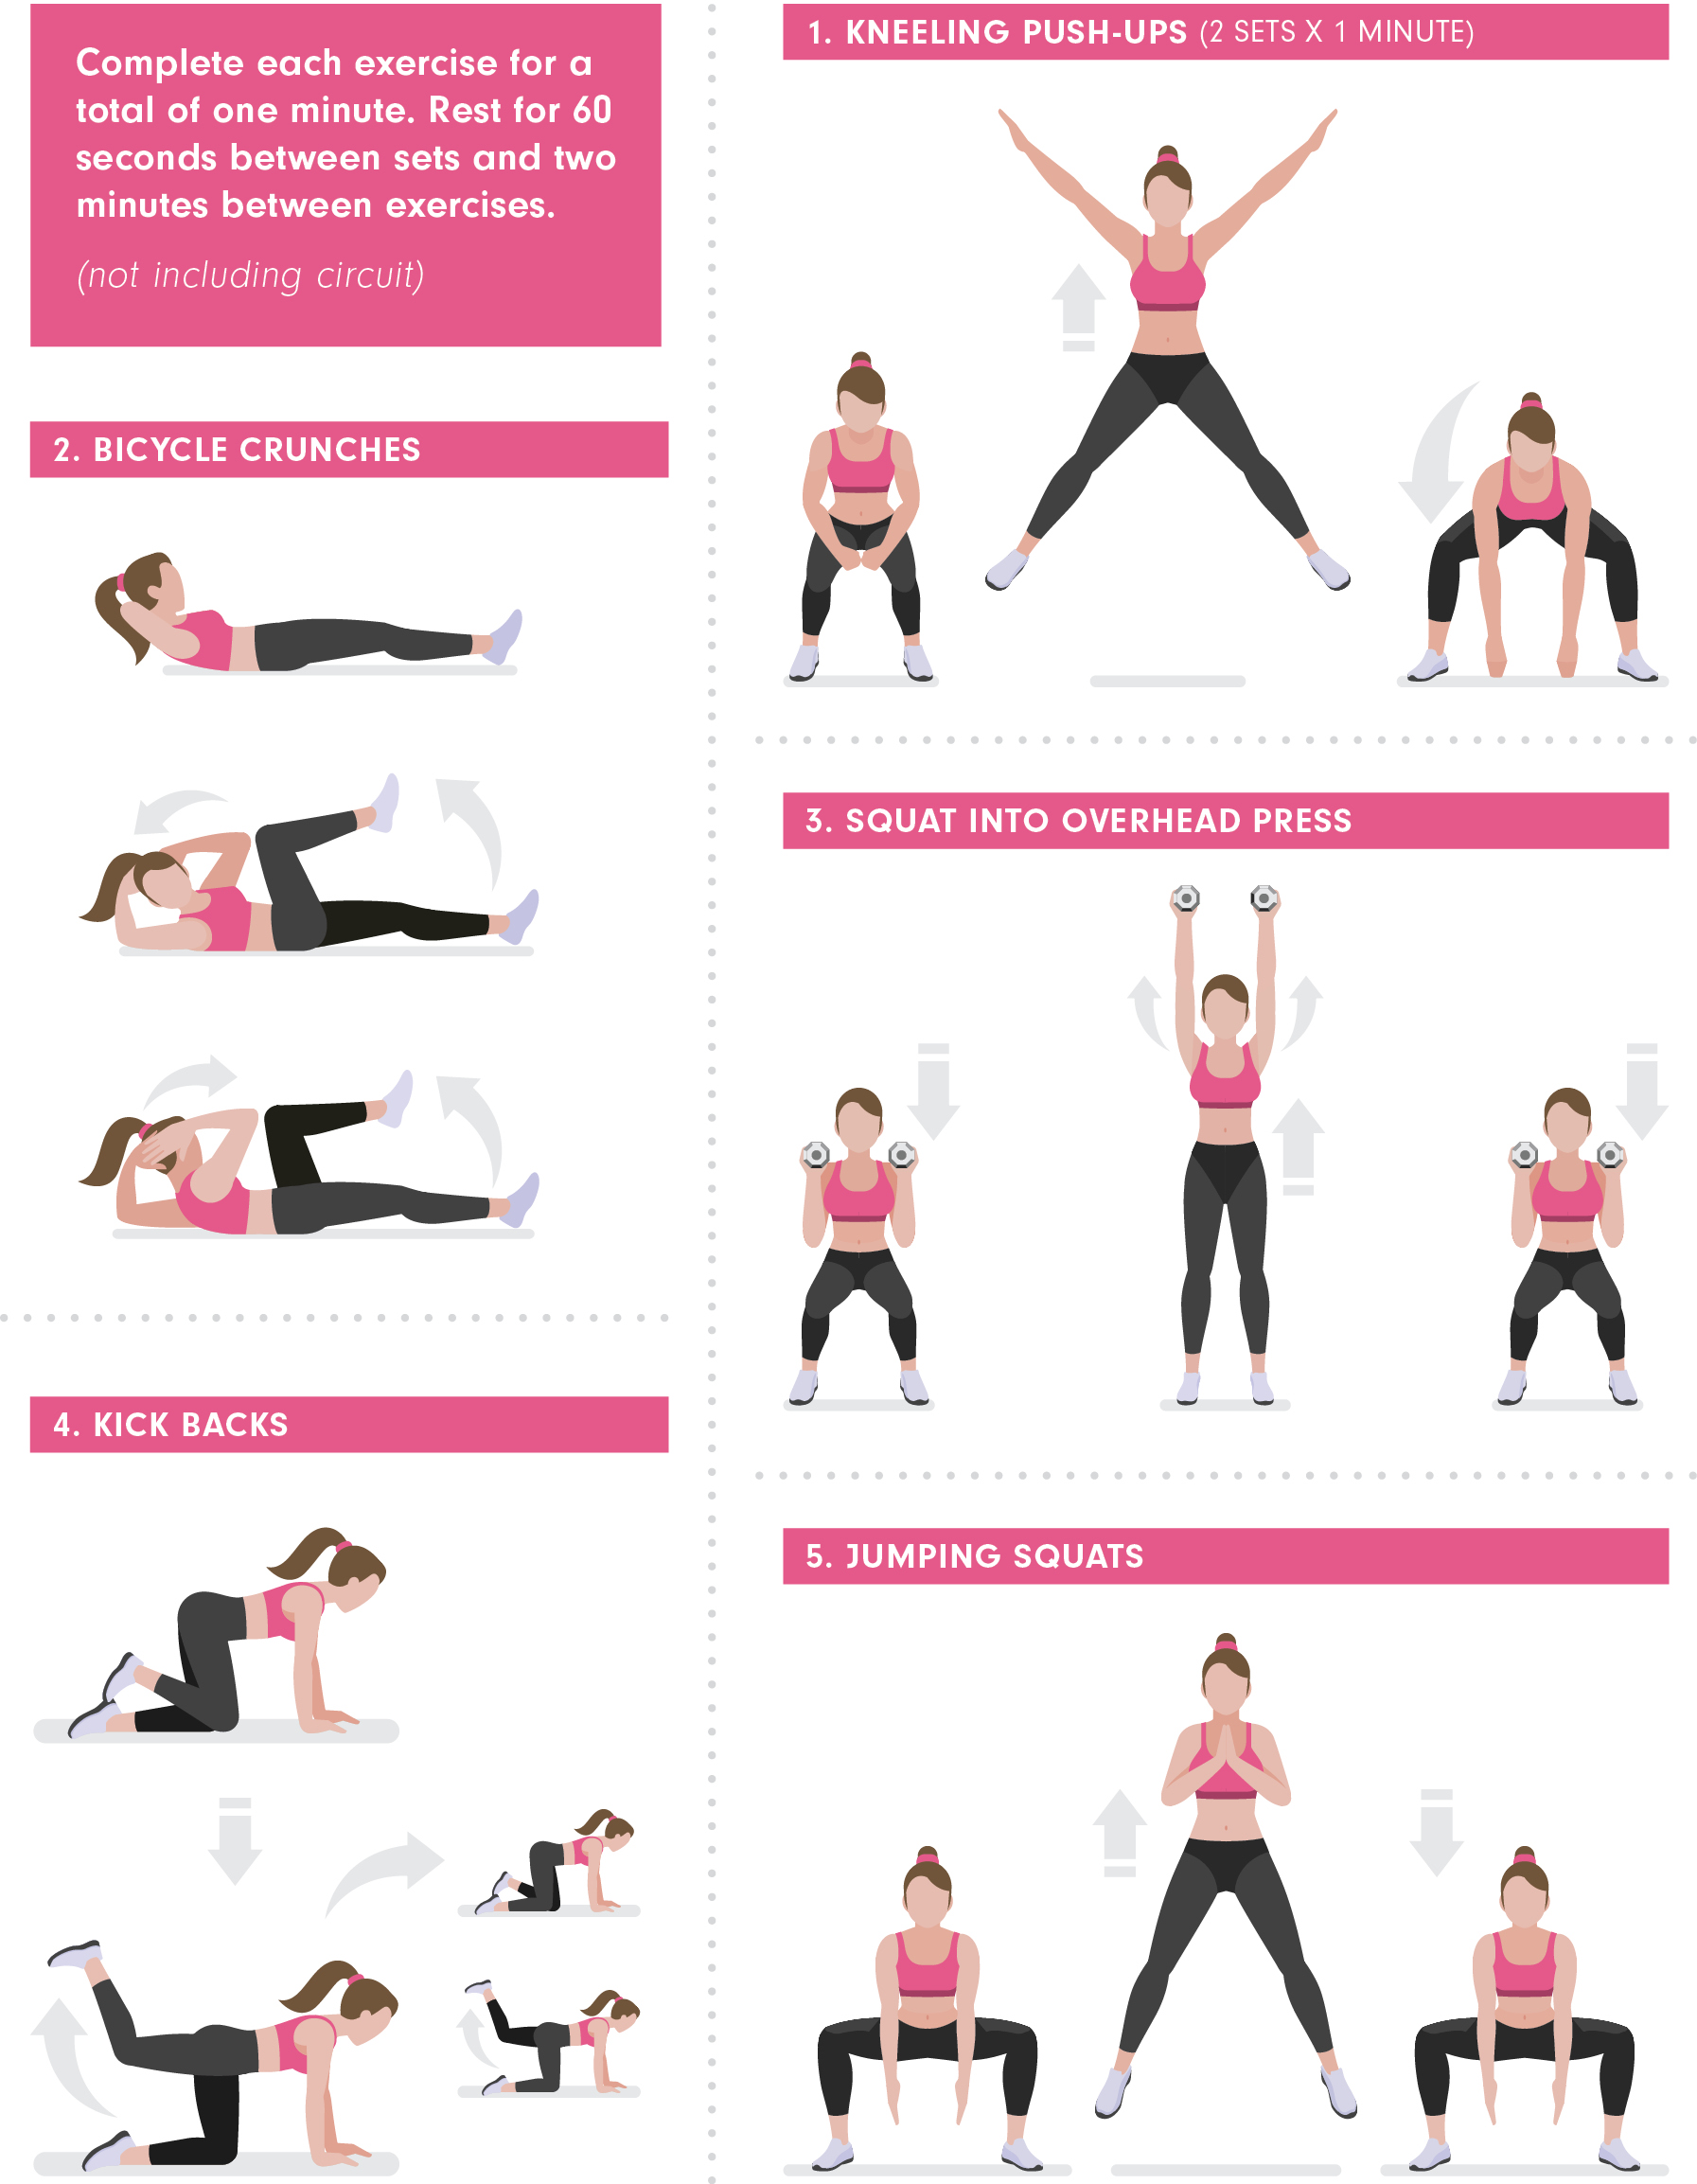 15-Minute Workout with Krissy Cela. Full body workout: 1. Kneeling push-ups (2 sets x 1 minute) 2. Bicycle crunches 3. Squat into overhead press 4. Kick backs 5. Jumping squats